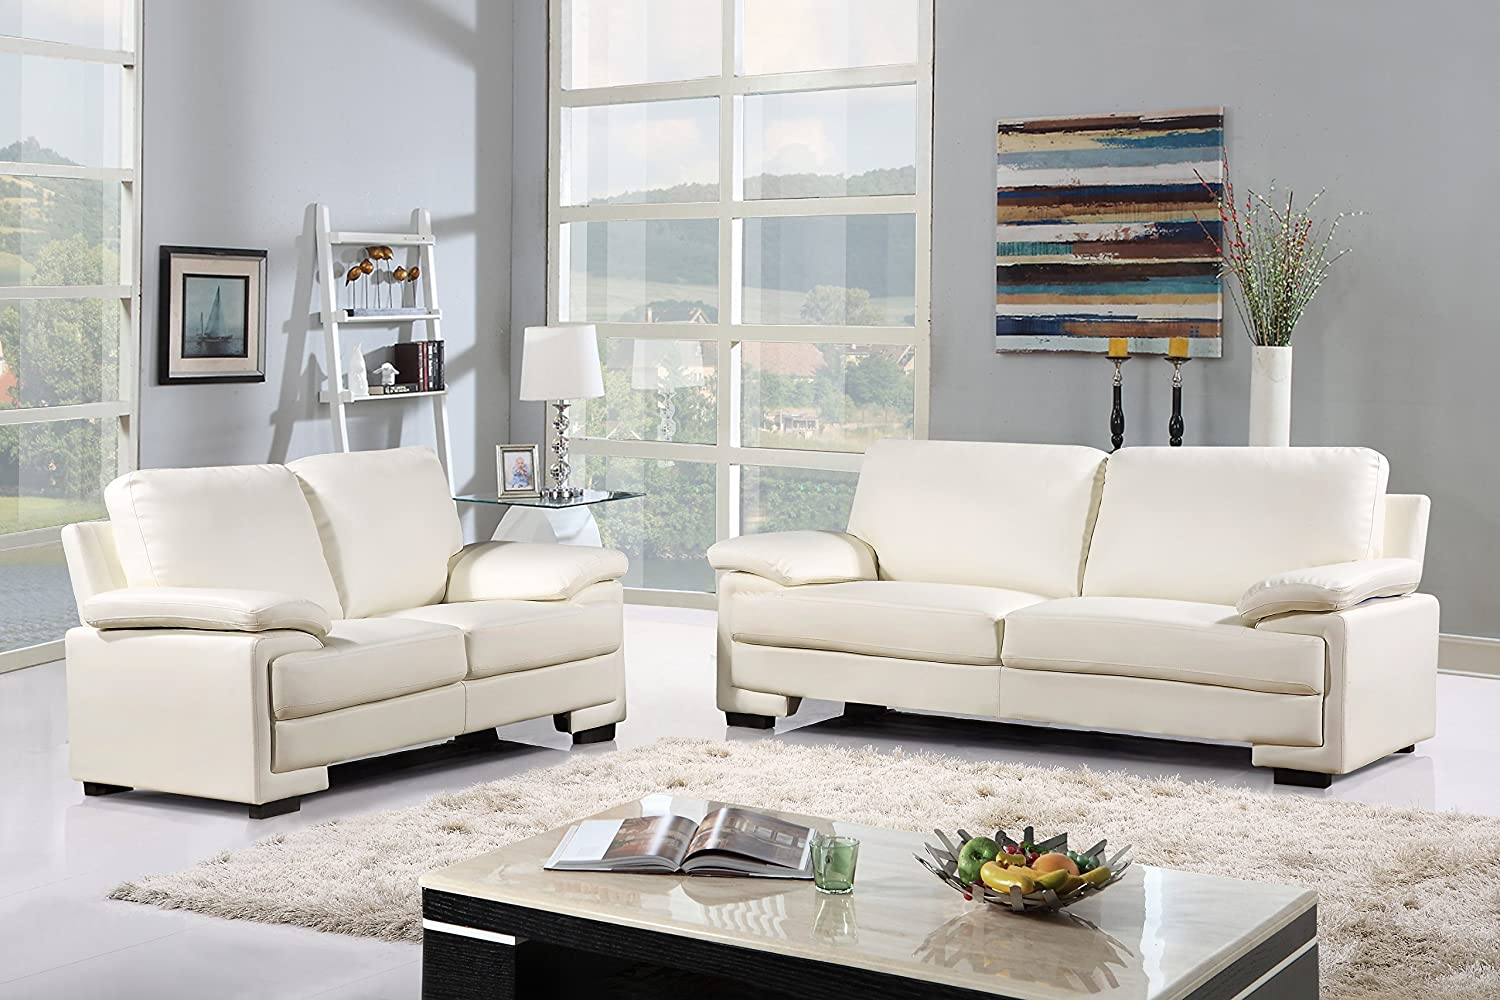 Amazon.com: Modern Faux Leather Sofa and Loveseat Living Room ...